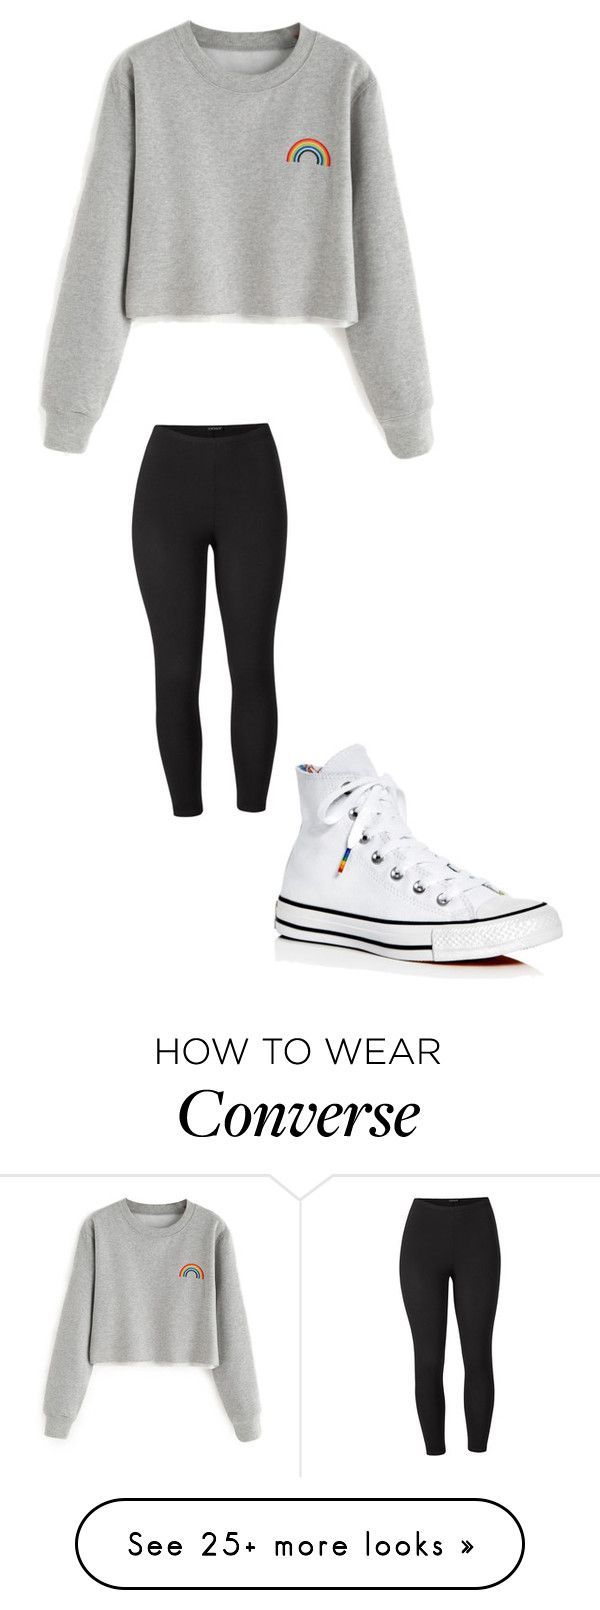 """Untitled #410"" by kaleyhanson on Polyvore featuring Converse, Venus and plus size clothing"